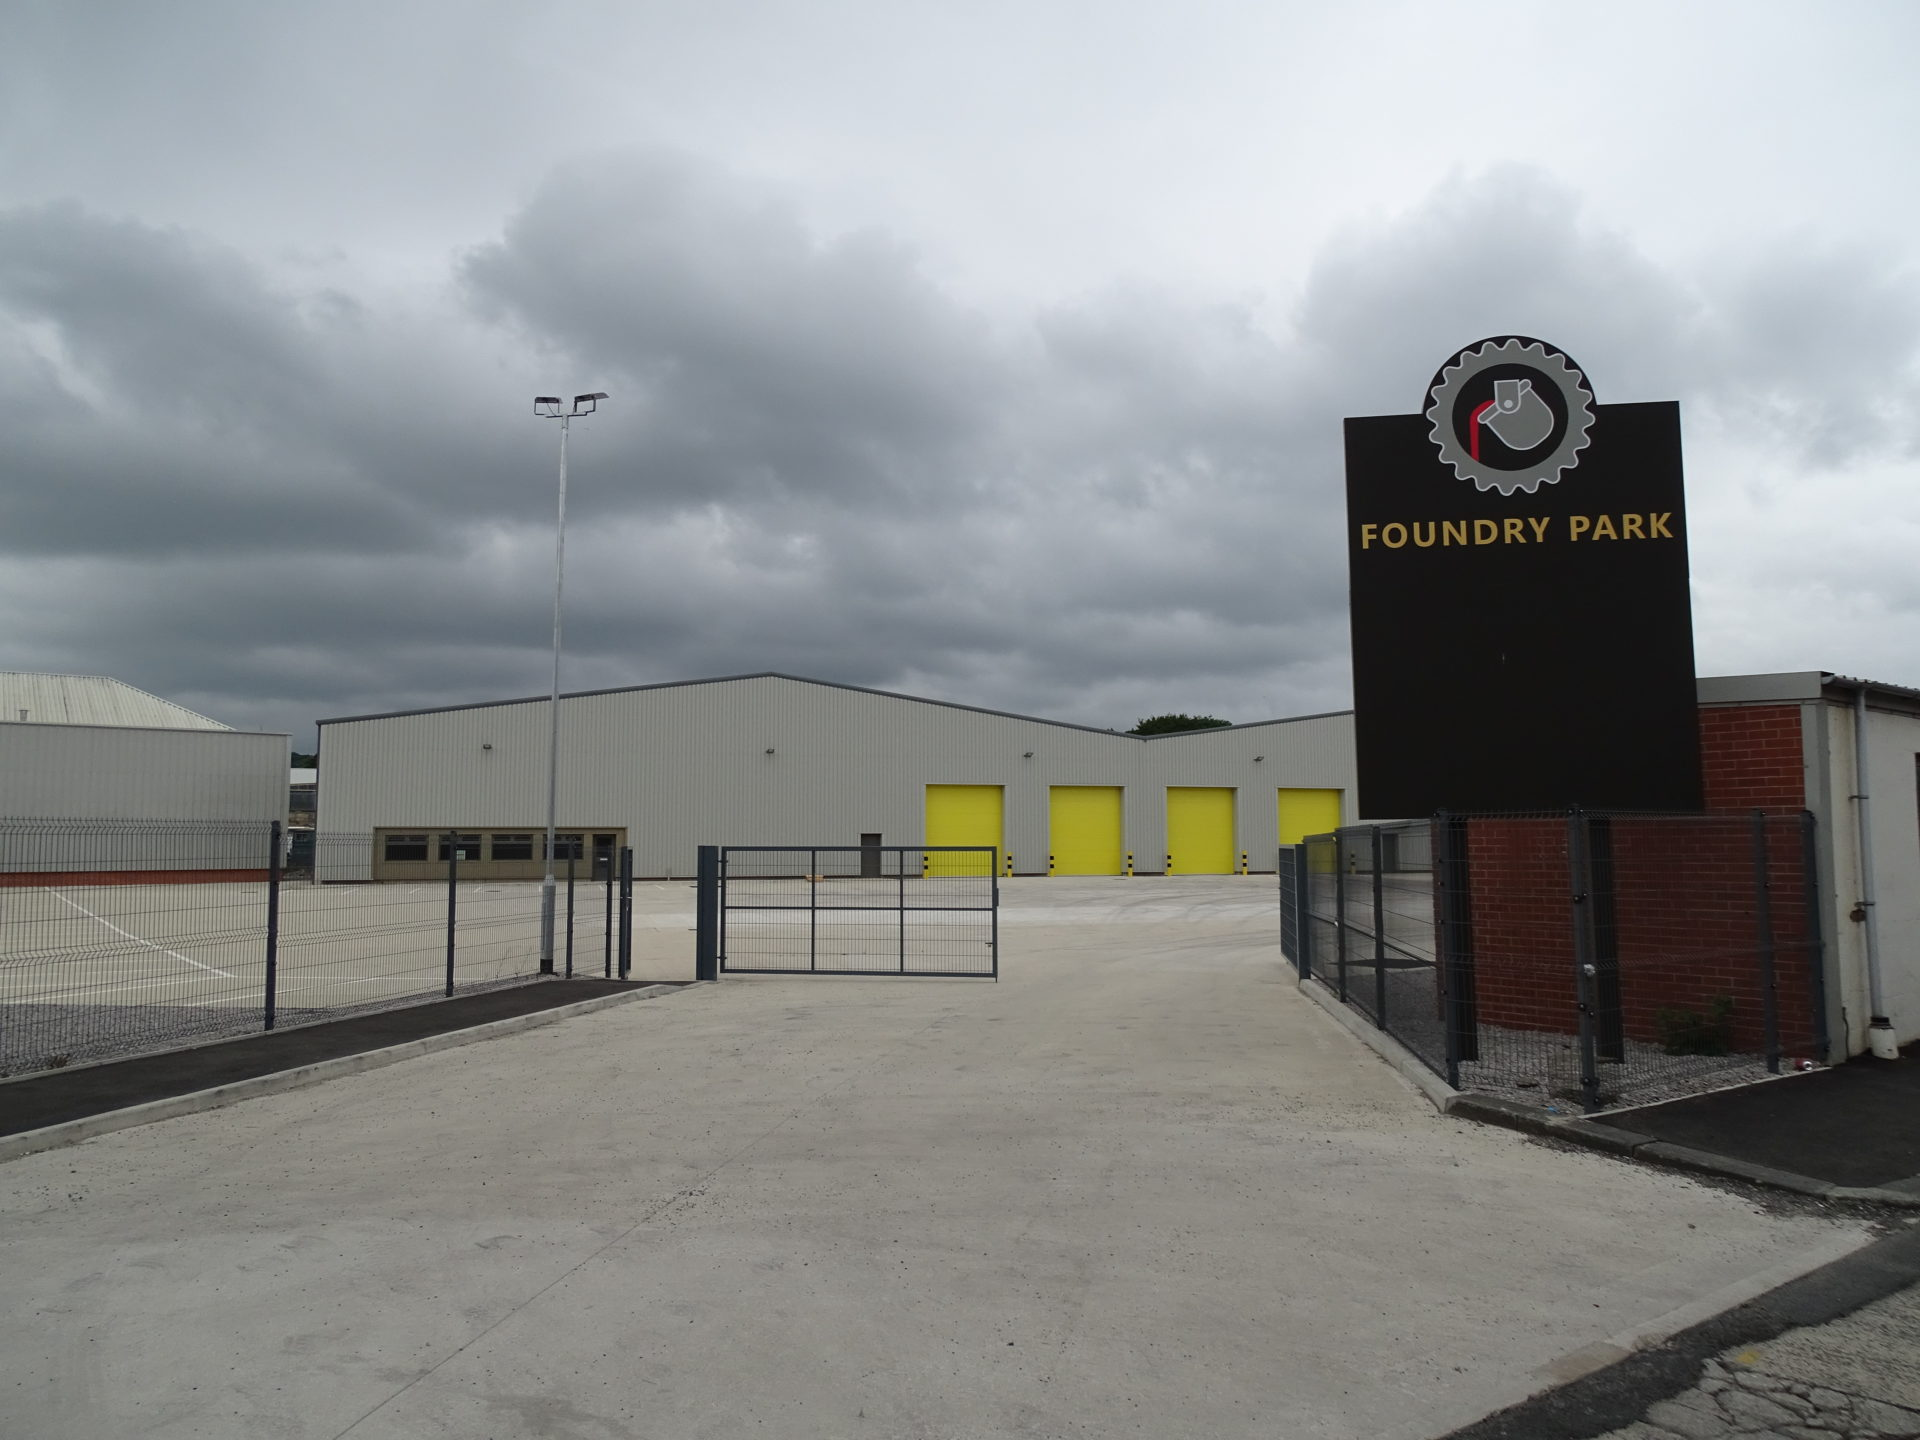 Press Release Image 3 Foundry Park